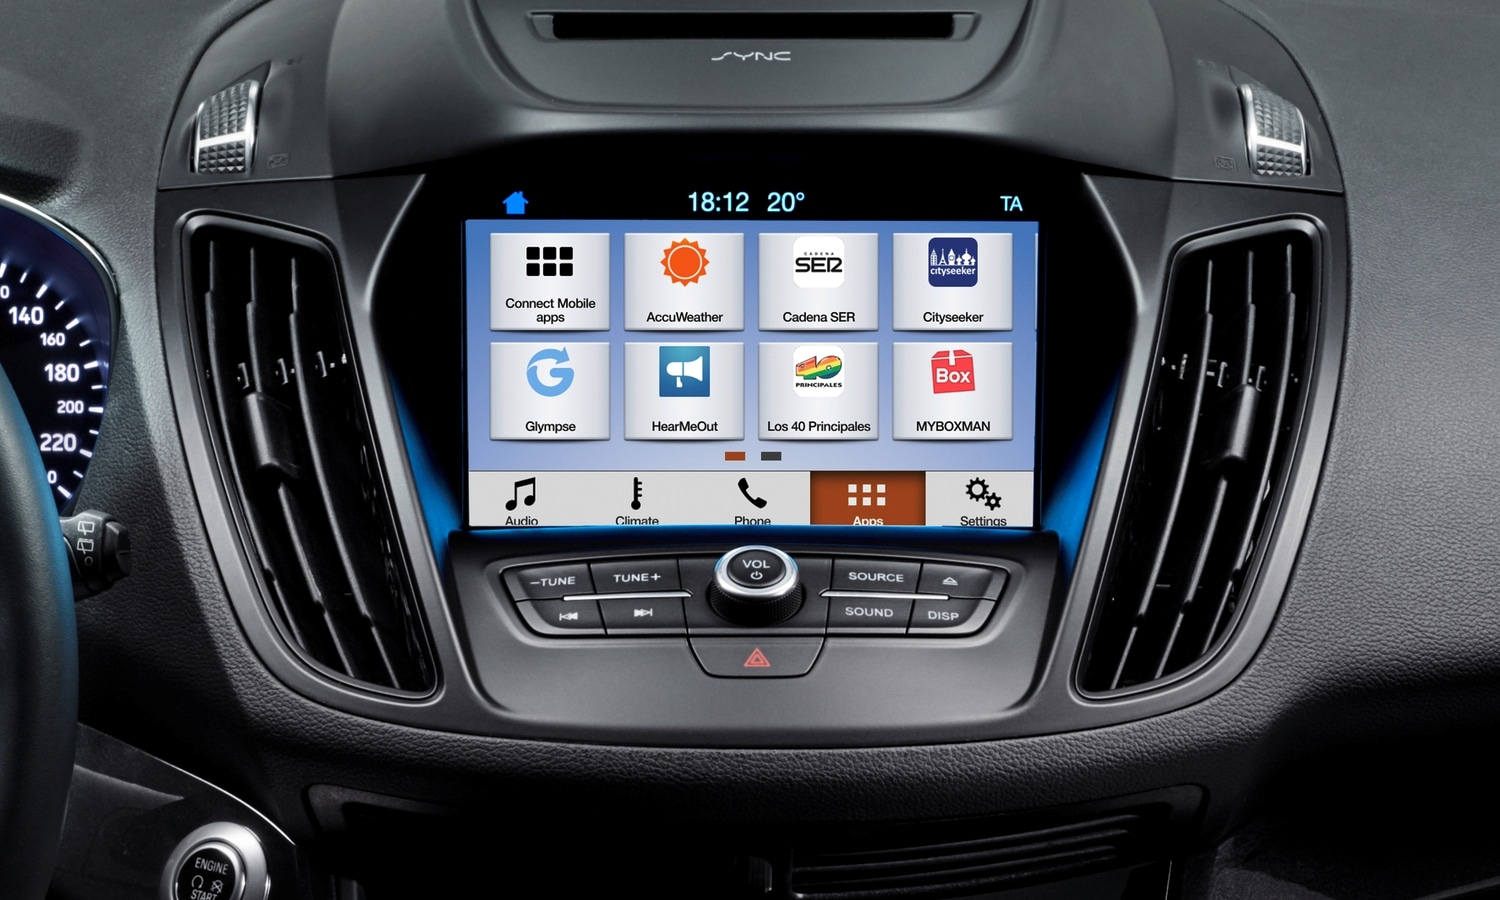 Ford Mondeo infotainment SYNC3